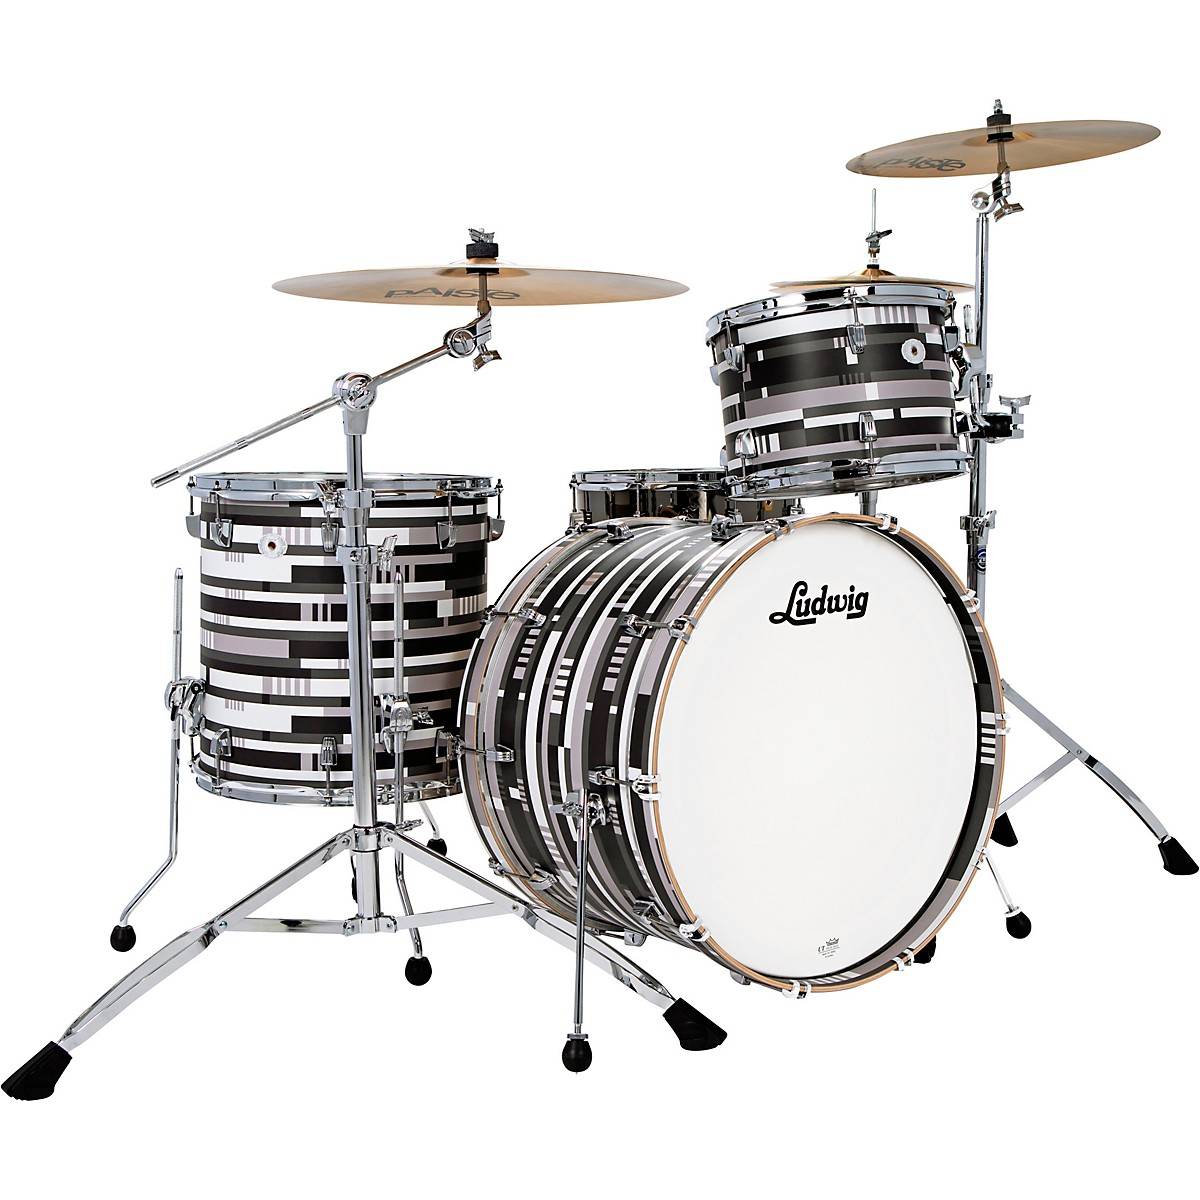 Ludwig NeuSonic Special-Edition 3-piece FAB Shell Pack with Digital Black Oyster Veneer